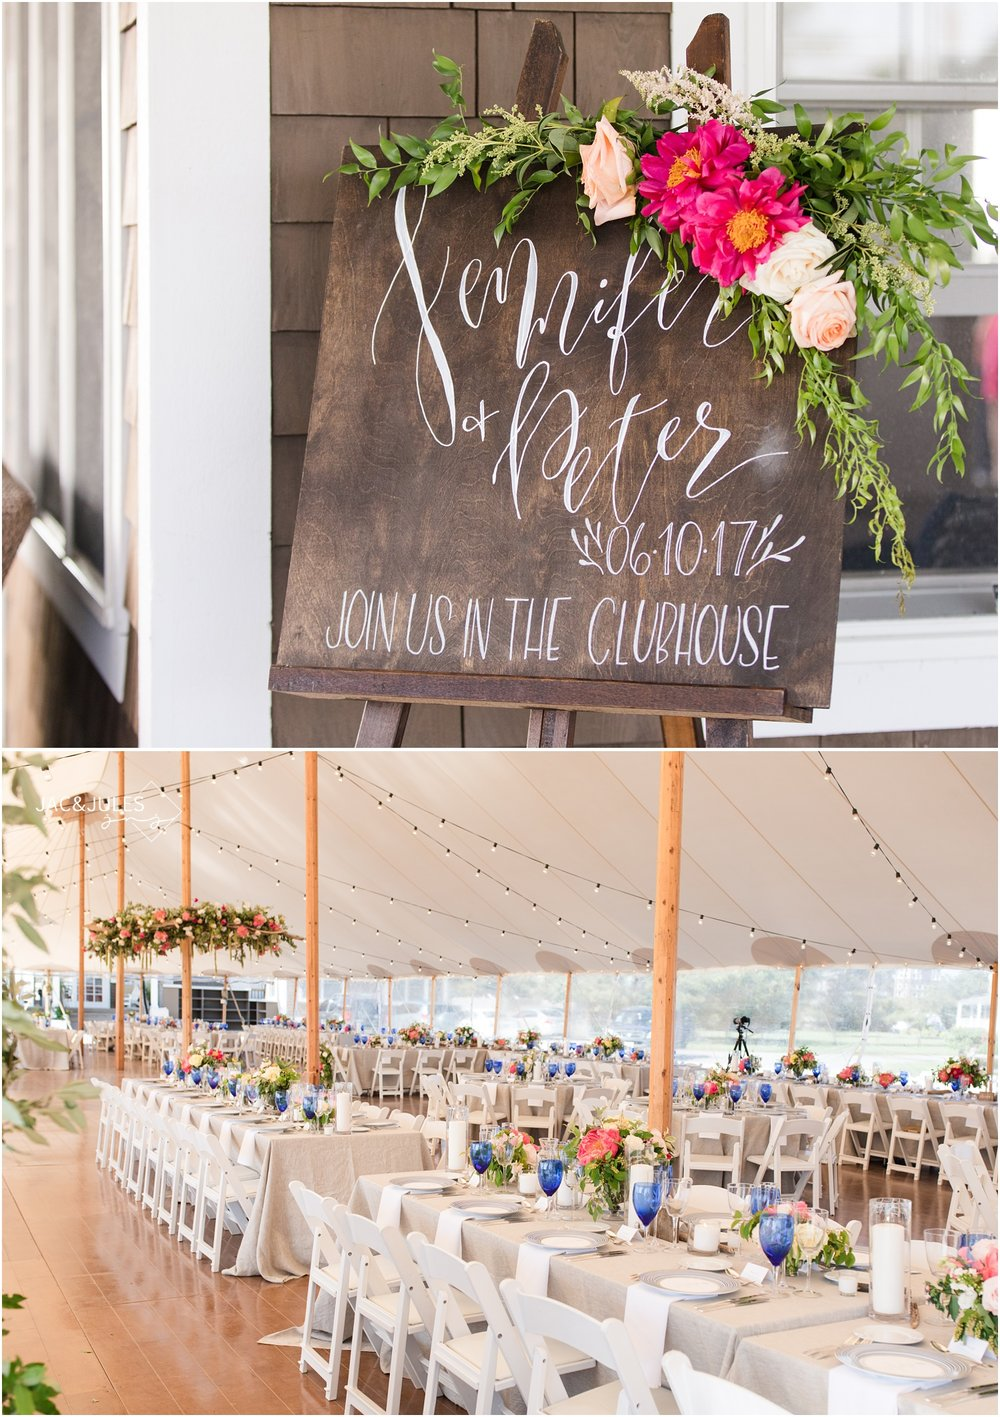 Wedding reception sign made of wood and draped in florals by Faye and Renee.